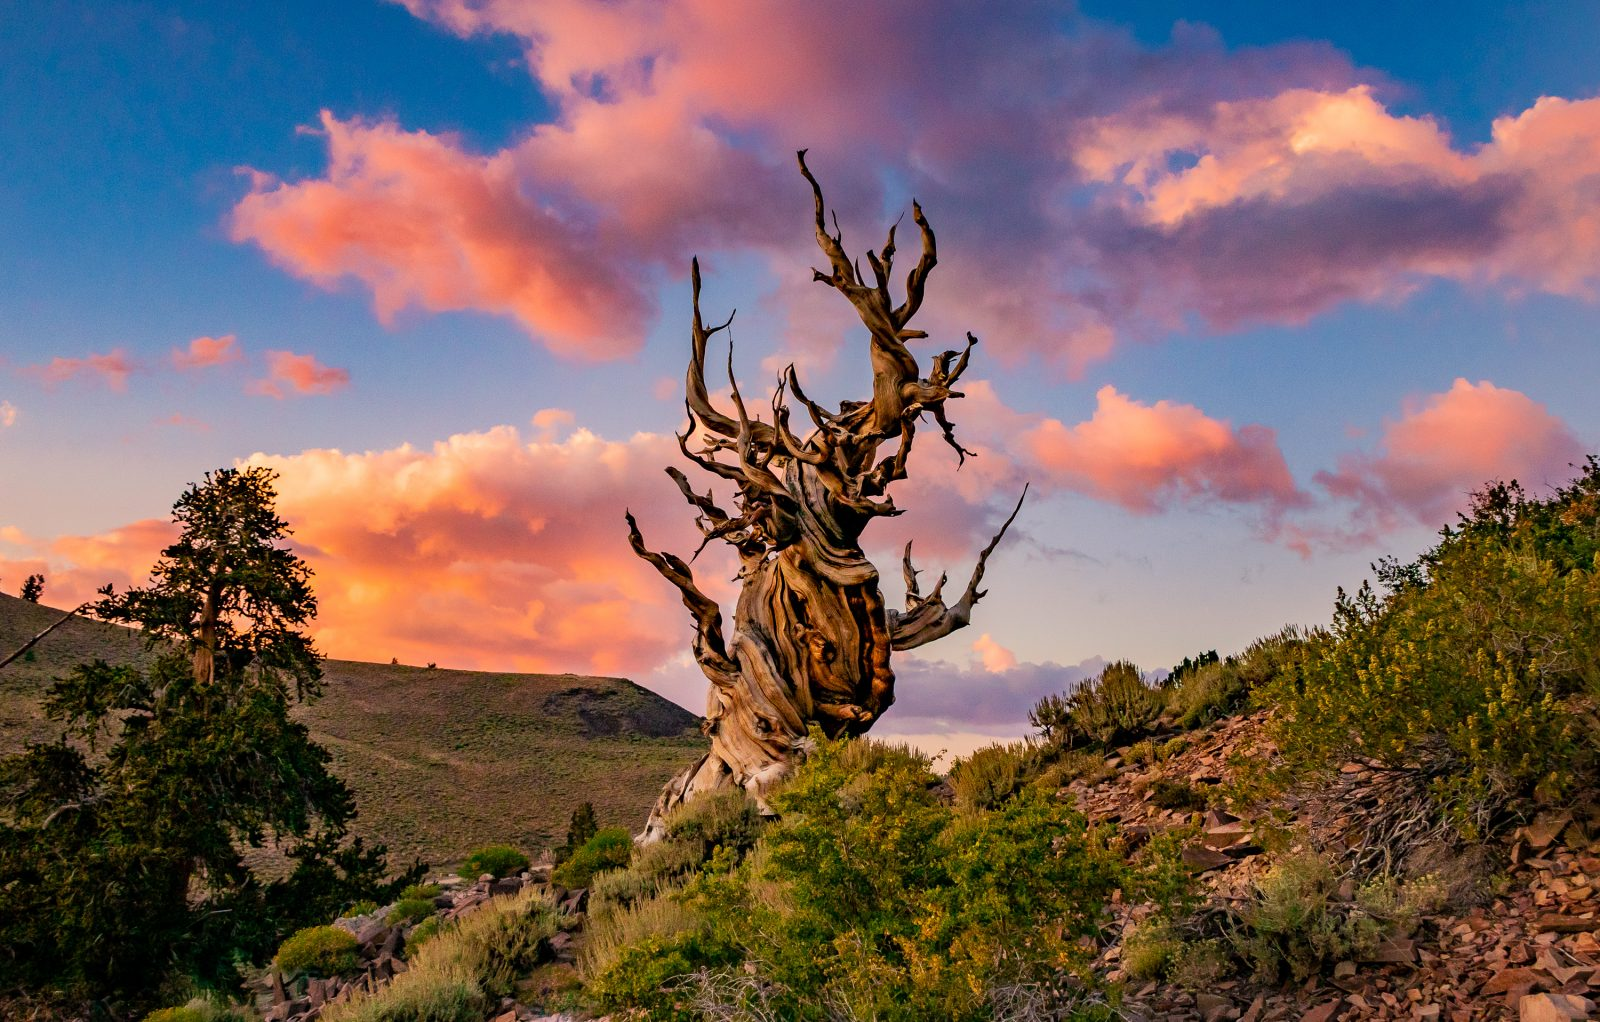 Summer Sizzle Over An Bristlecone Pine Tree